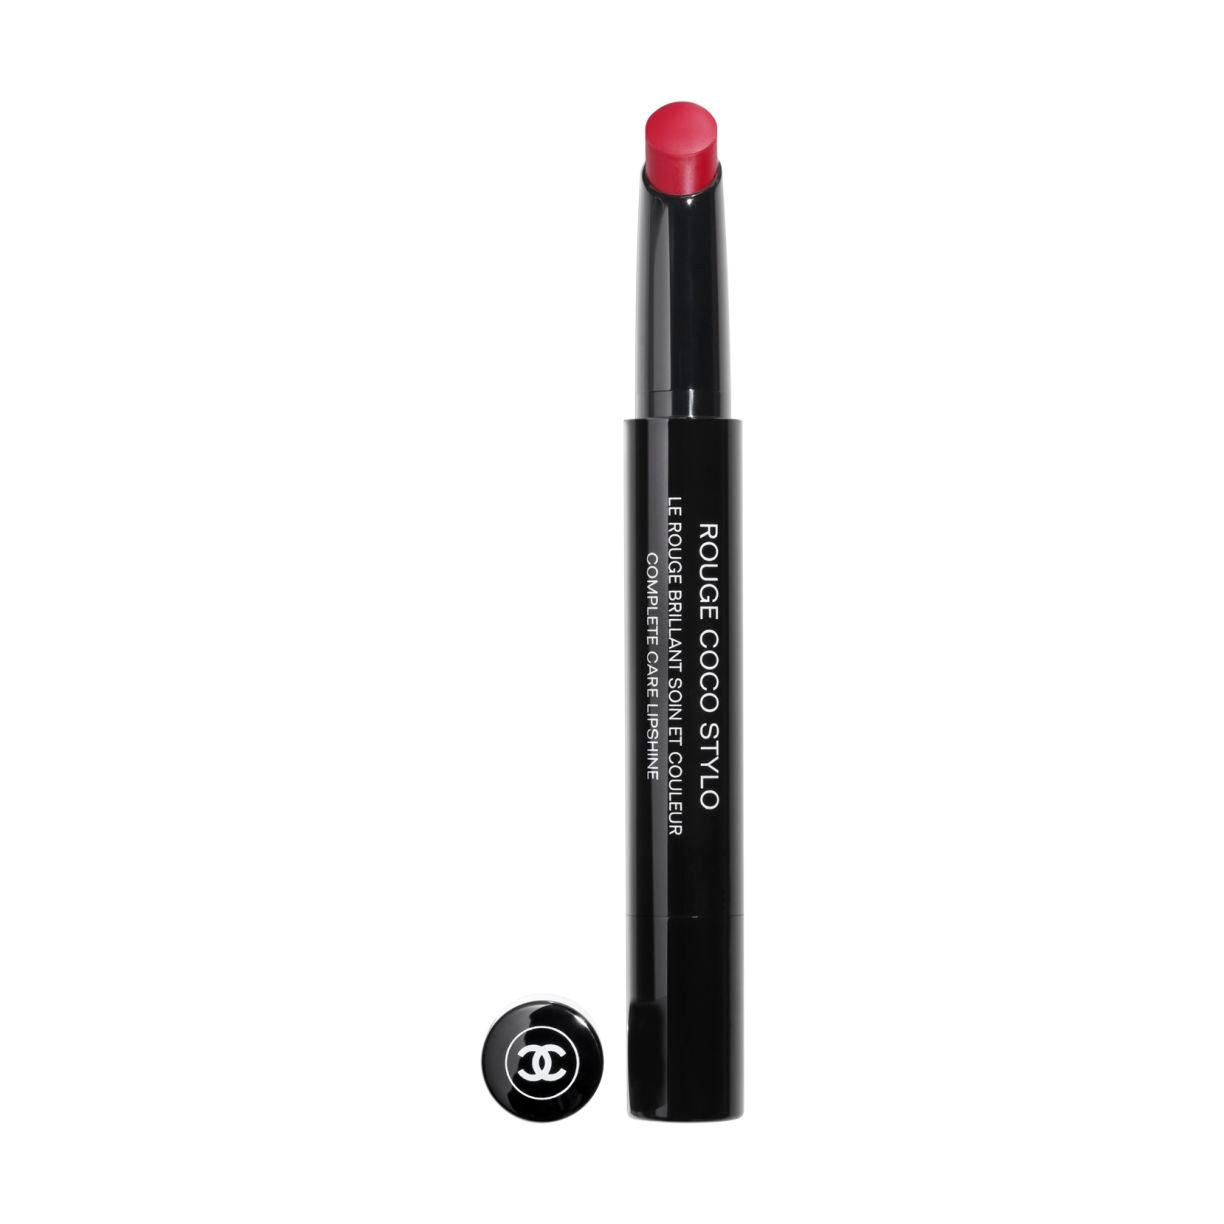 ROUGE COCO STYLO COMPLETE CARE LIPSHINE 214 MESSAGE 2G